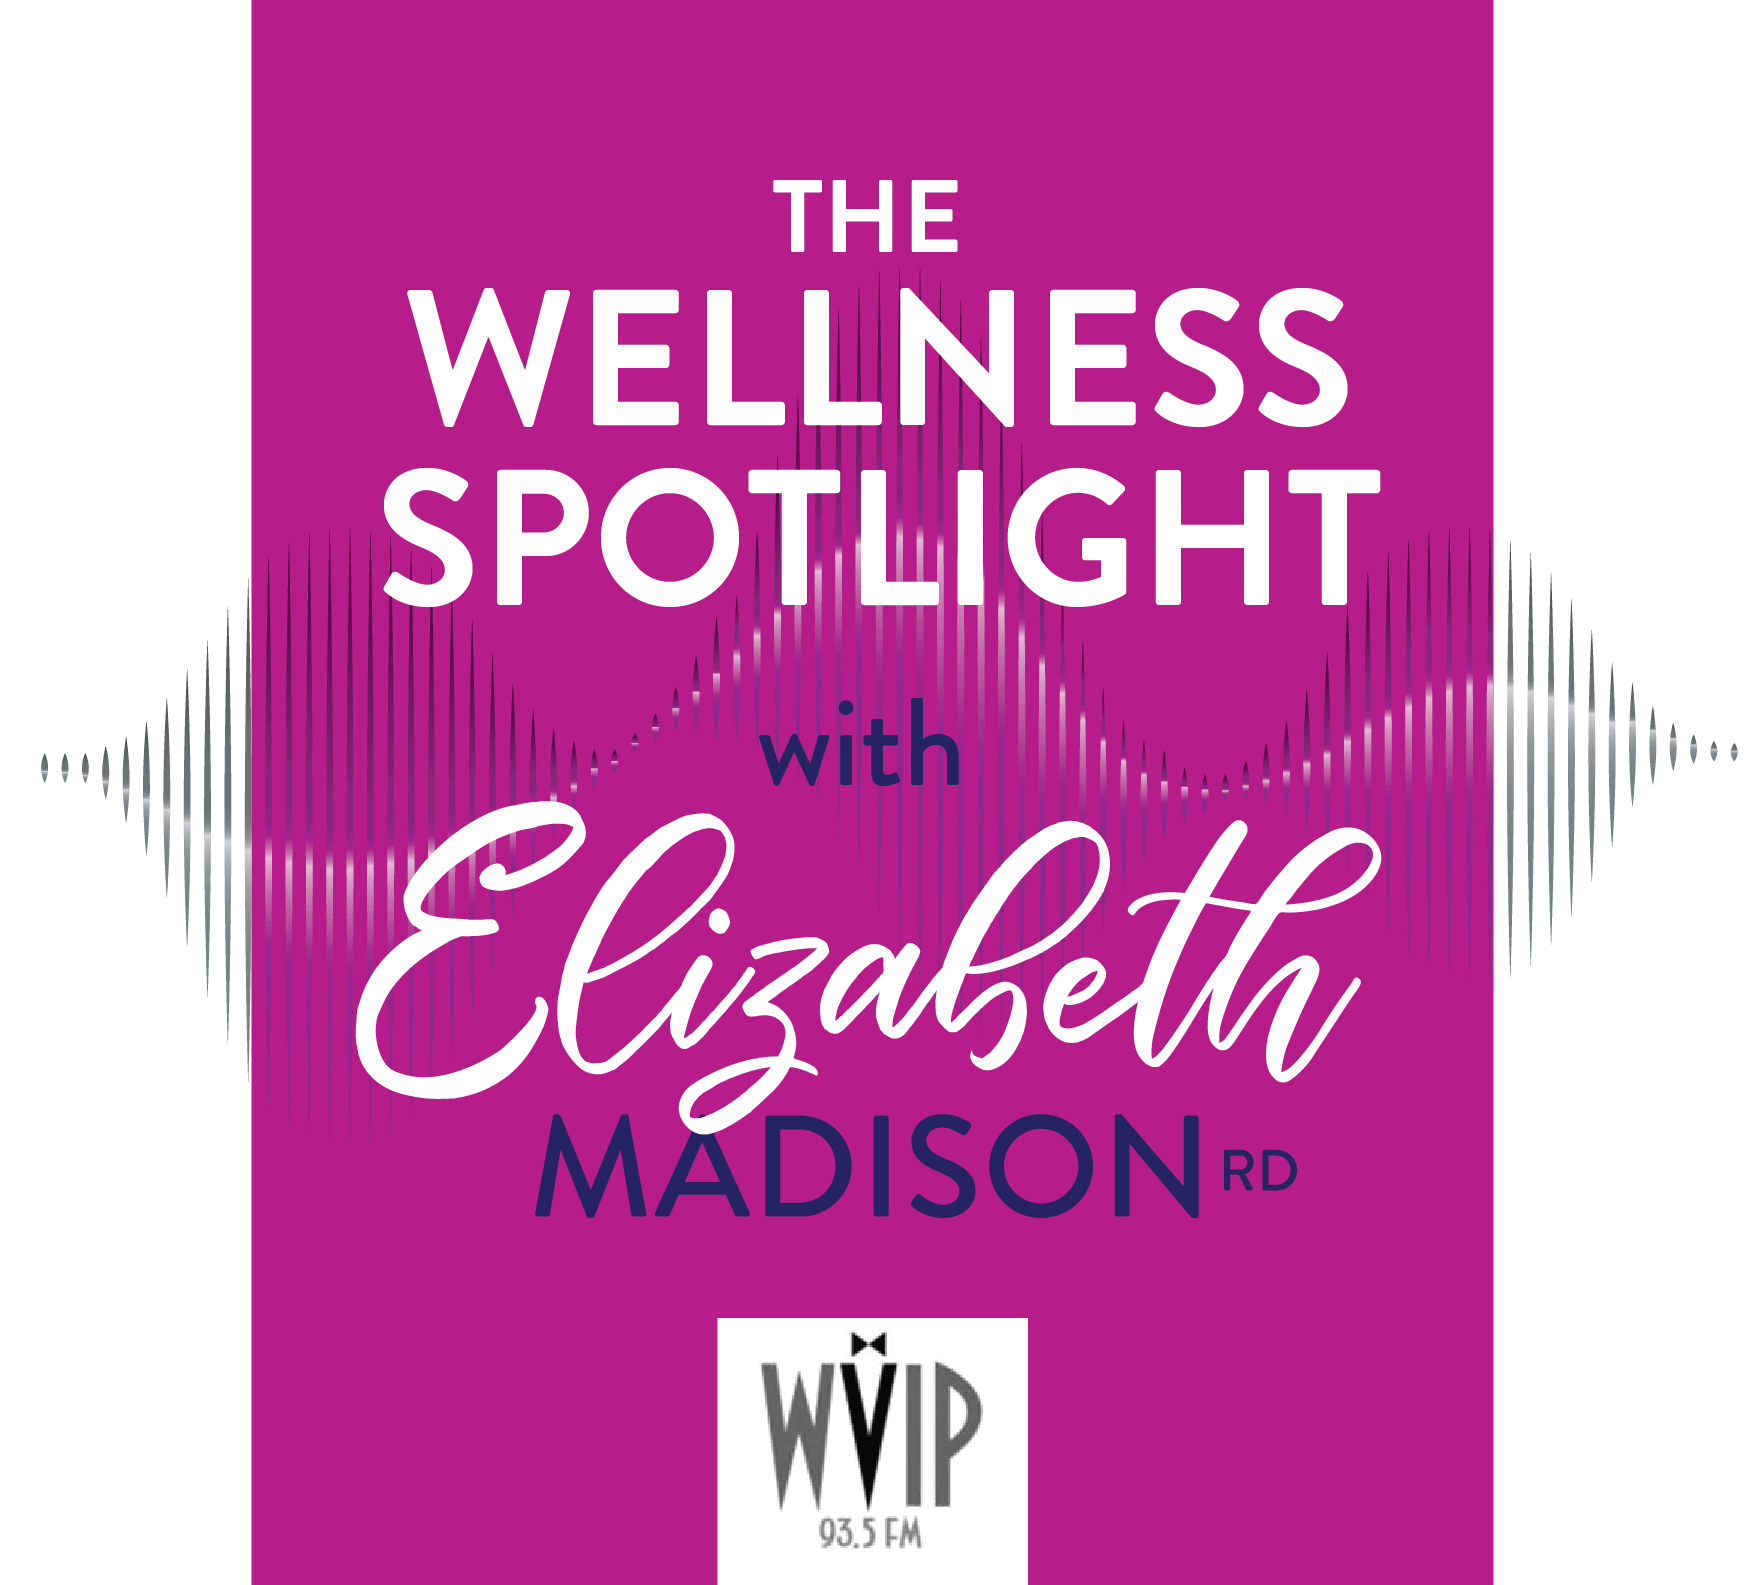 EM_Wellness Spot with Elizabeth Madison RD_RECTANGLE_with WVIP@2x-100